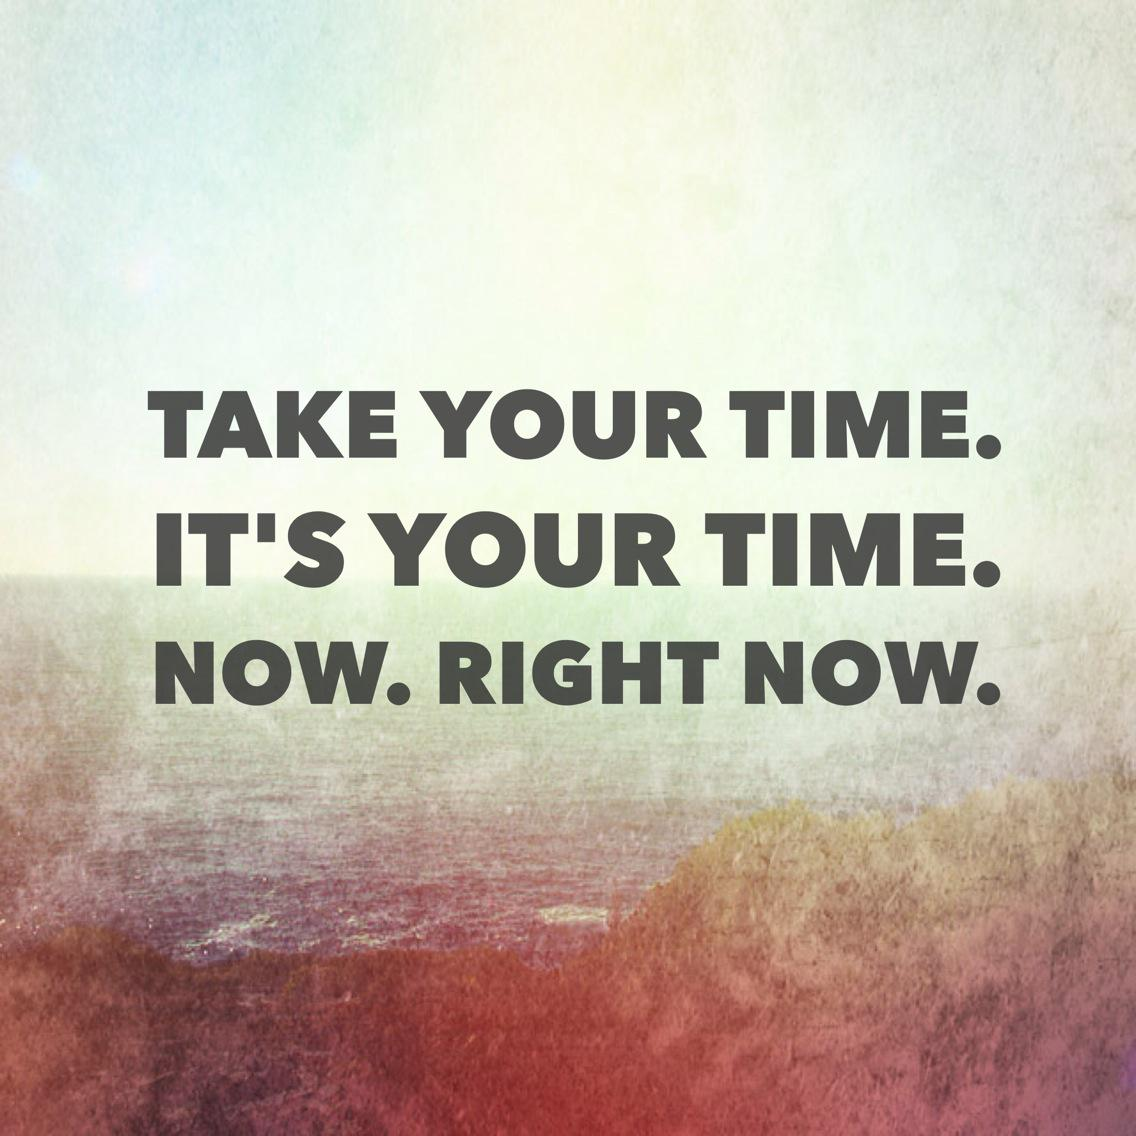 You only have right now. So take it... http://t.co/f2ffuyAcQ1